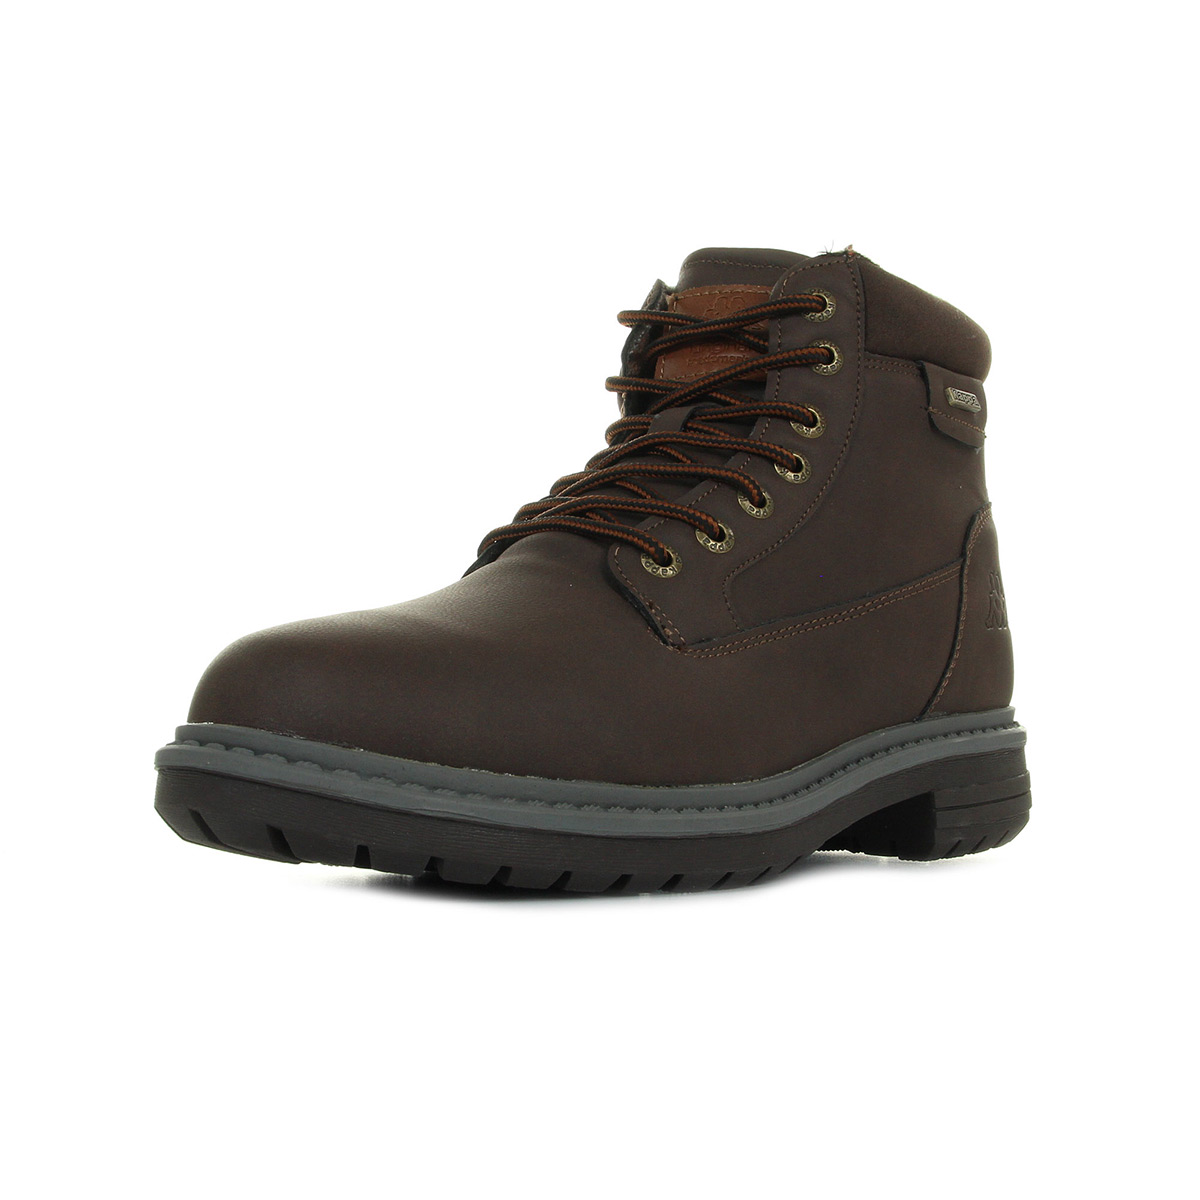 Kappa Breithorn Man Footwear marron - Chaussures Boot Homme